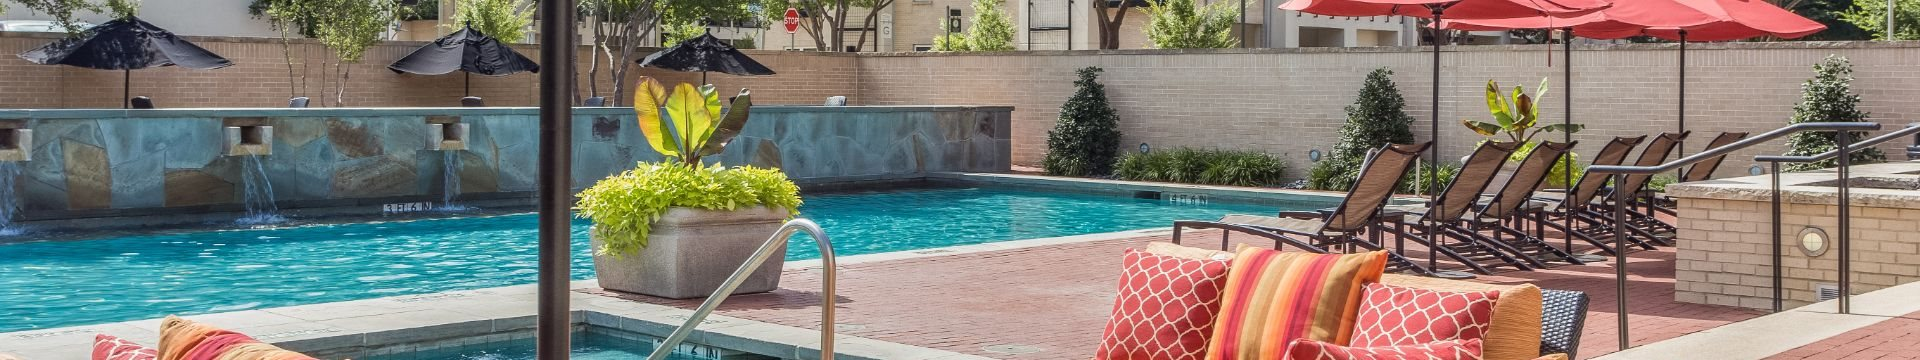 Lounge Swimming Pool With Cabana at Pavilion Townplace, Dallas, 75209